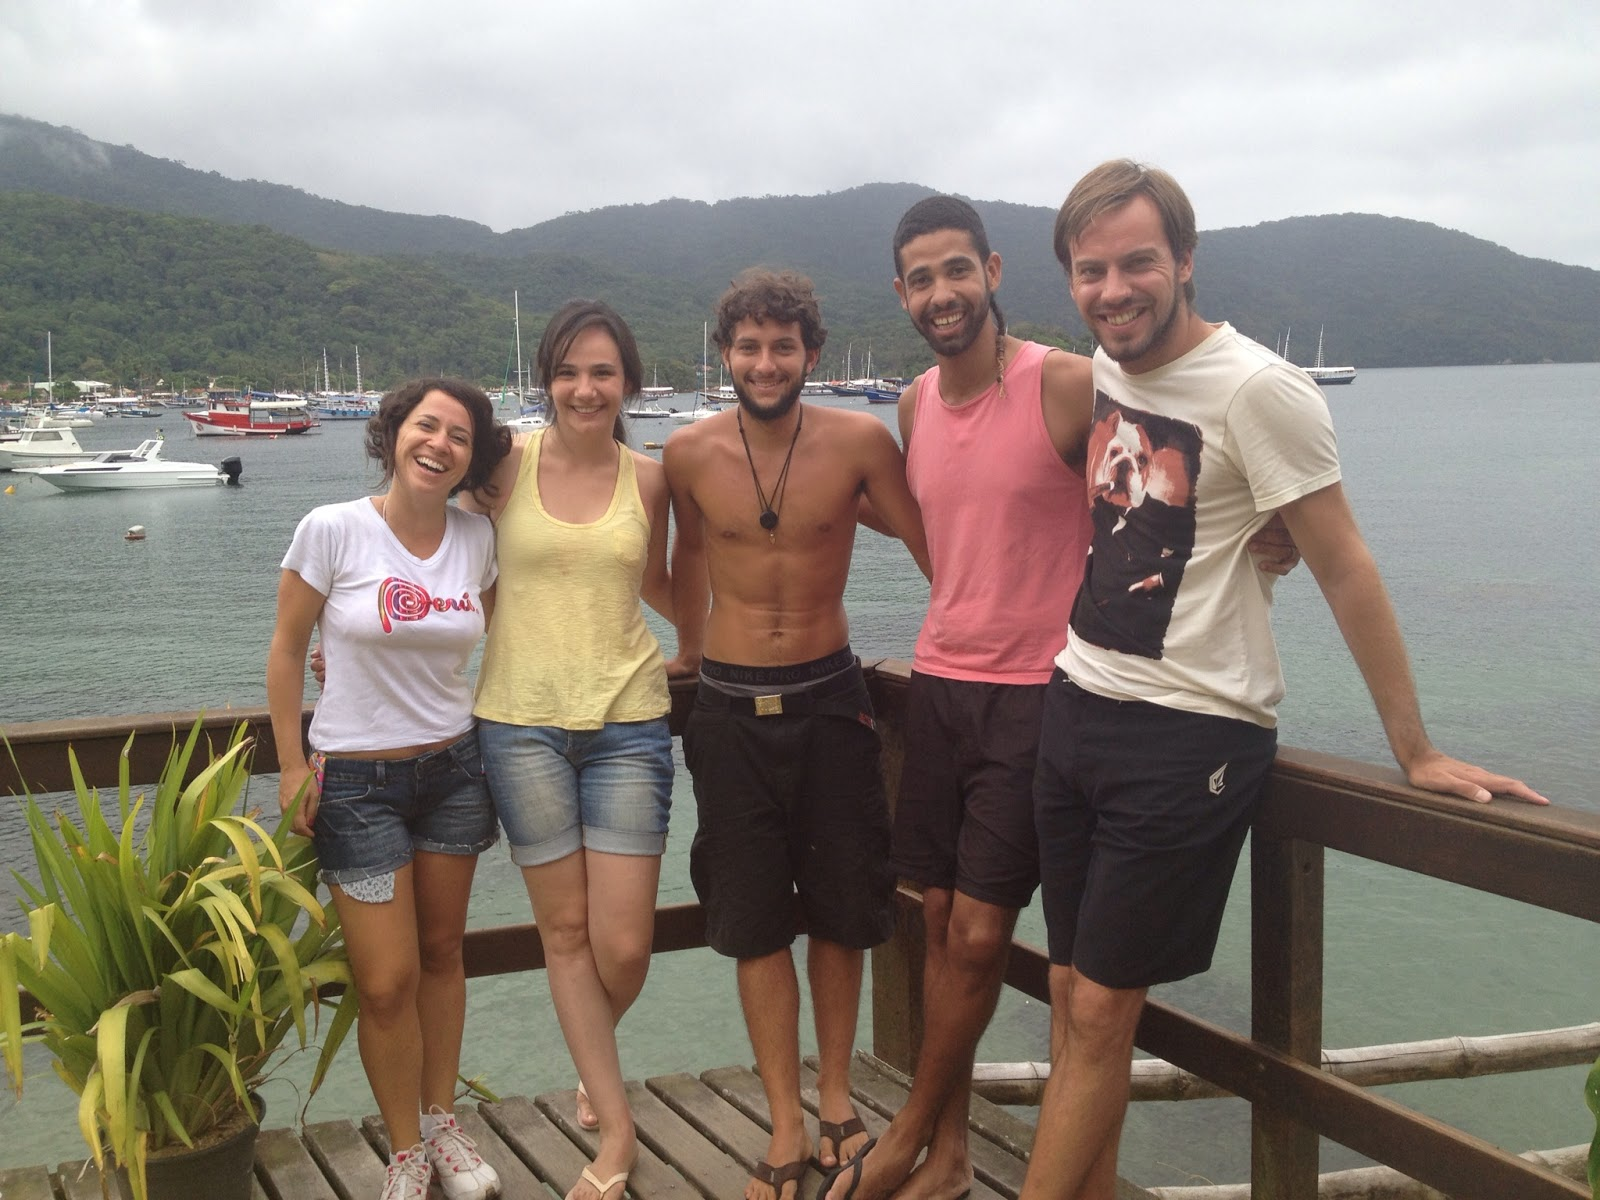 Team Brazil, France and England on the stunning island of Ilhe Grande